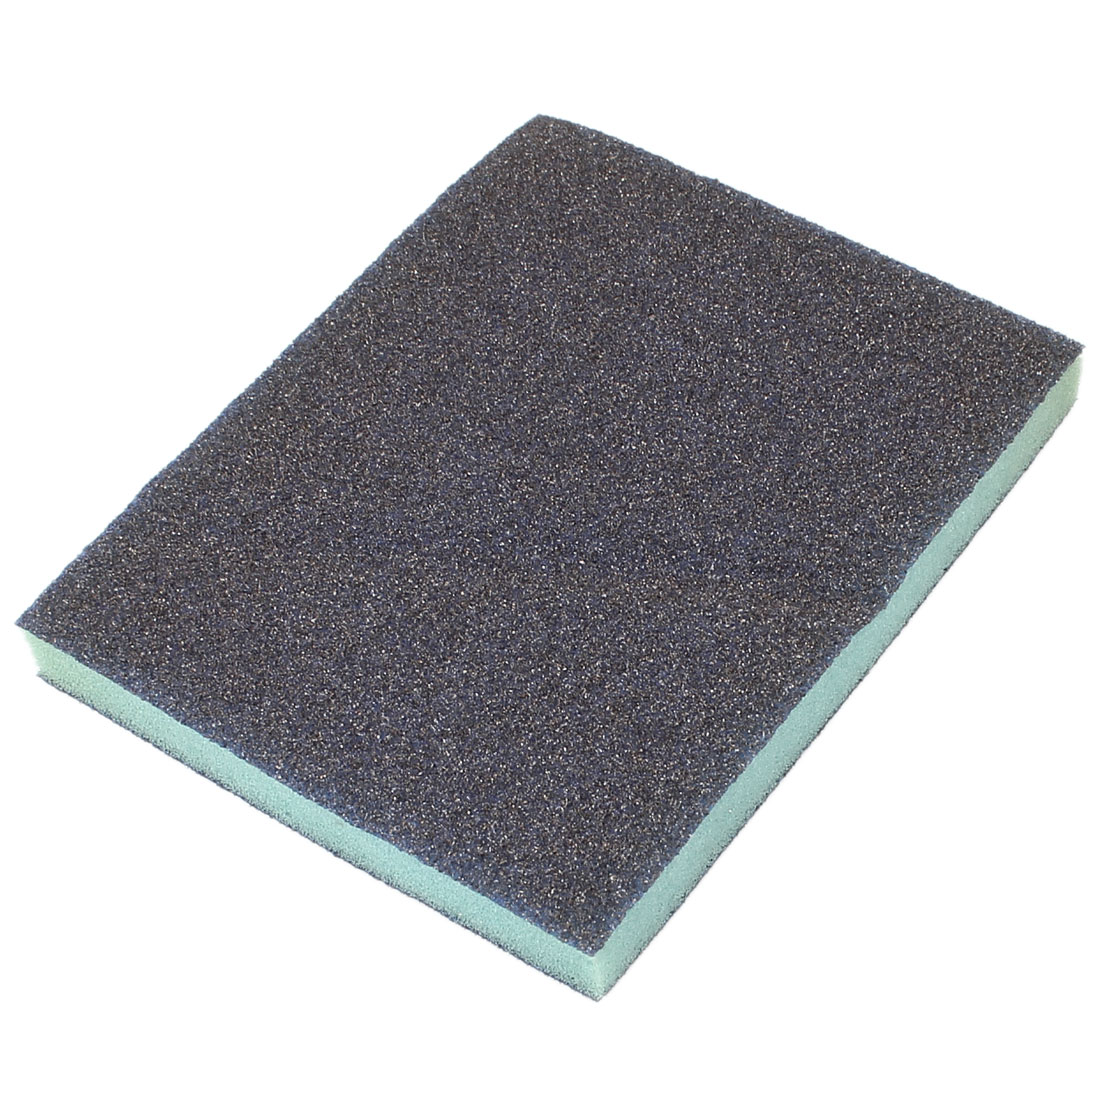 Rectangle Rough Grinding Sanding Sponge Block Gray 120mm x 98mm x 13mm